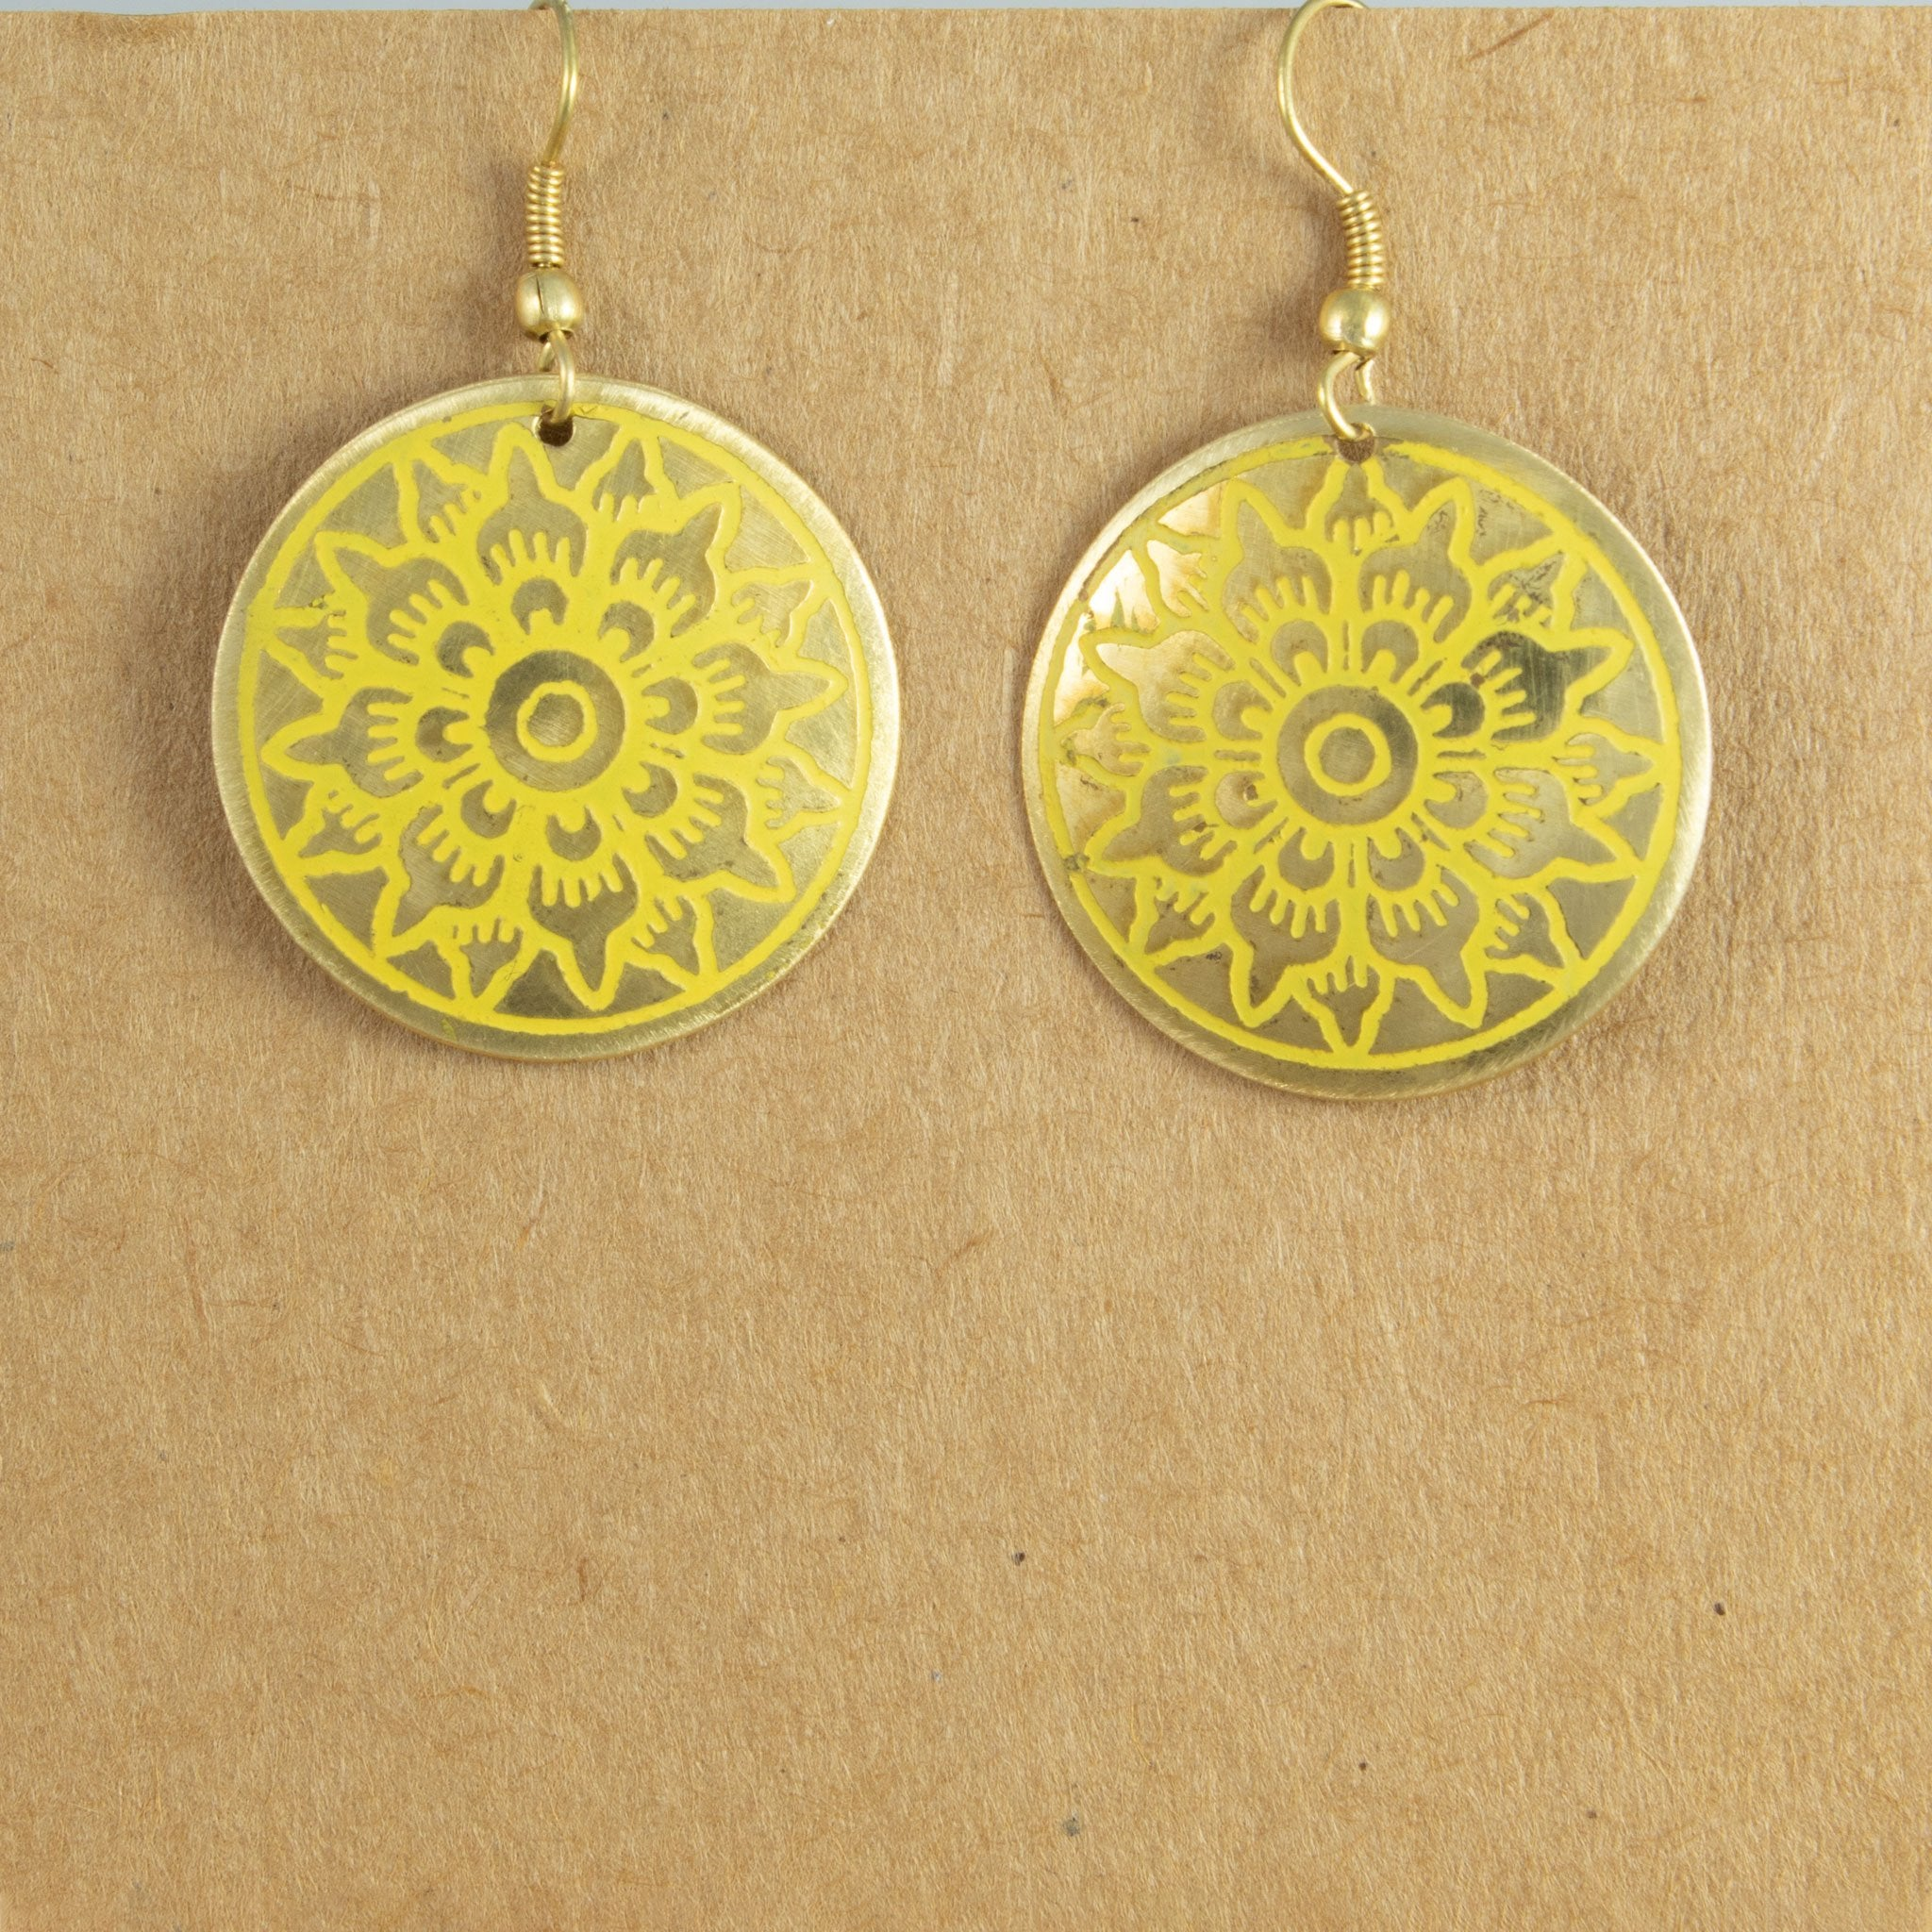 Gold coloured metal earrings with yellow inlay | Earrings - The Naughty Shrew